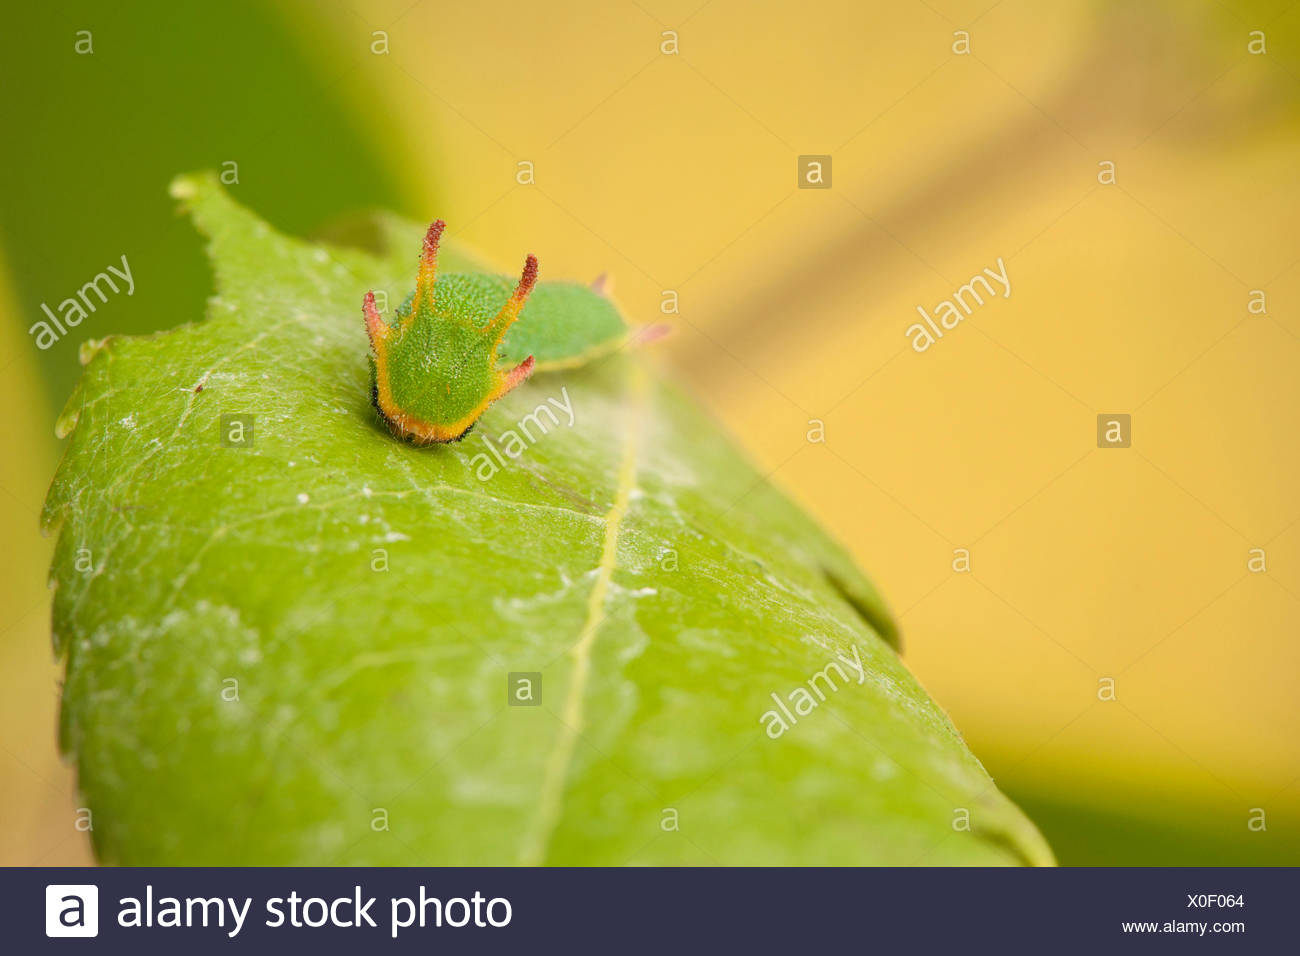 two-tailed pasha (Charaxes jasius), caterpillar on a leaf - Stock Image